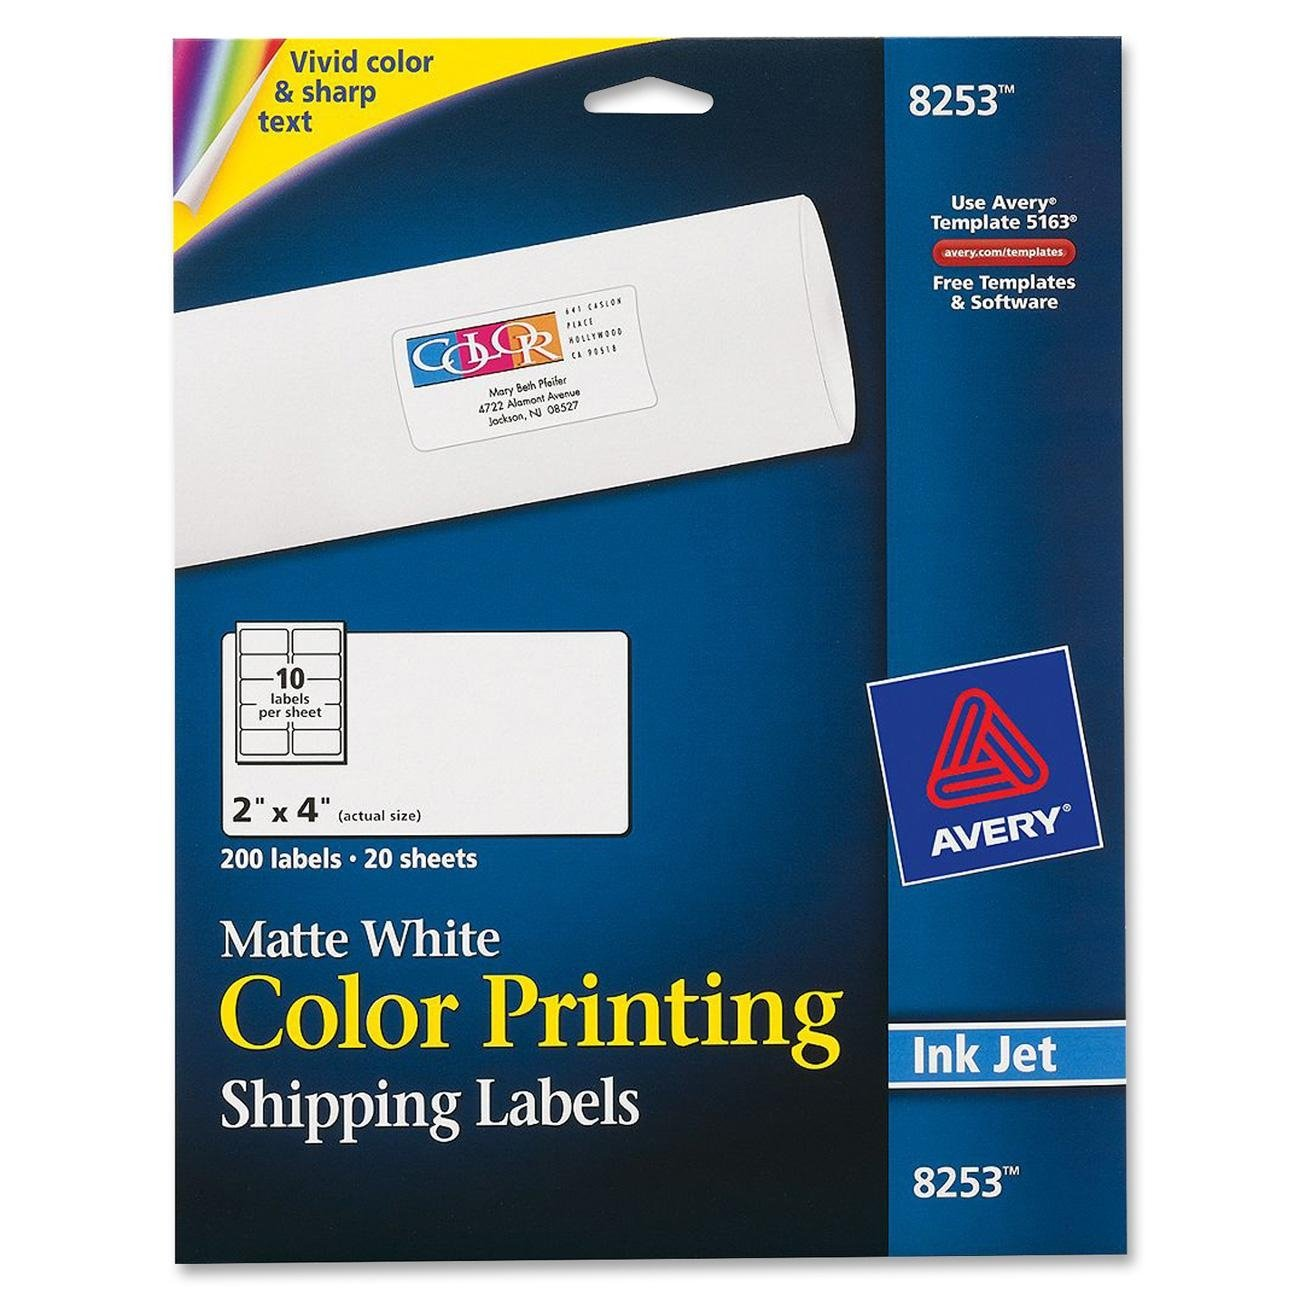 Color printer label - Amazon Com Avery Matte White Color Inkjet Printing Labels 8253 All Purpose Labels Office Products